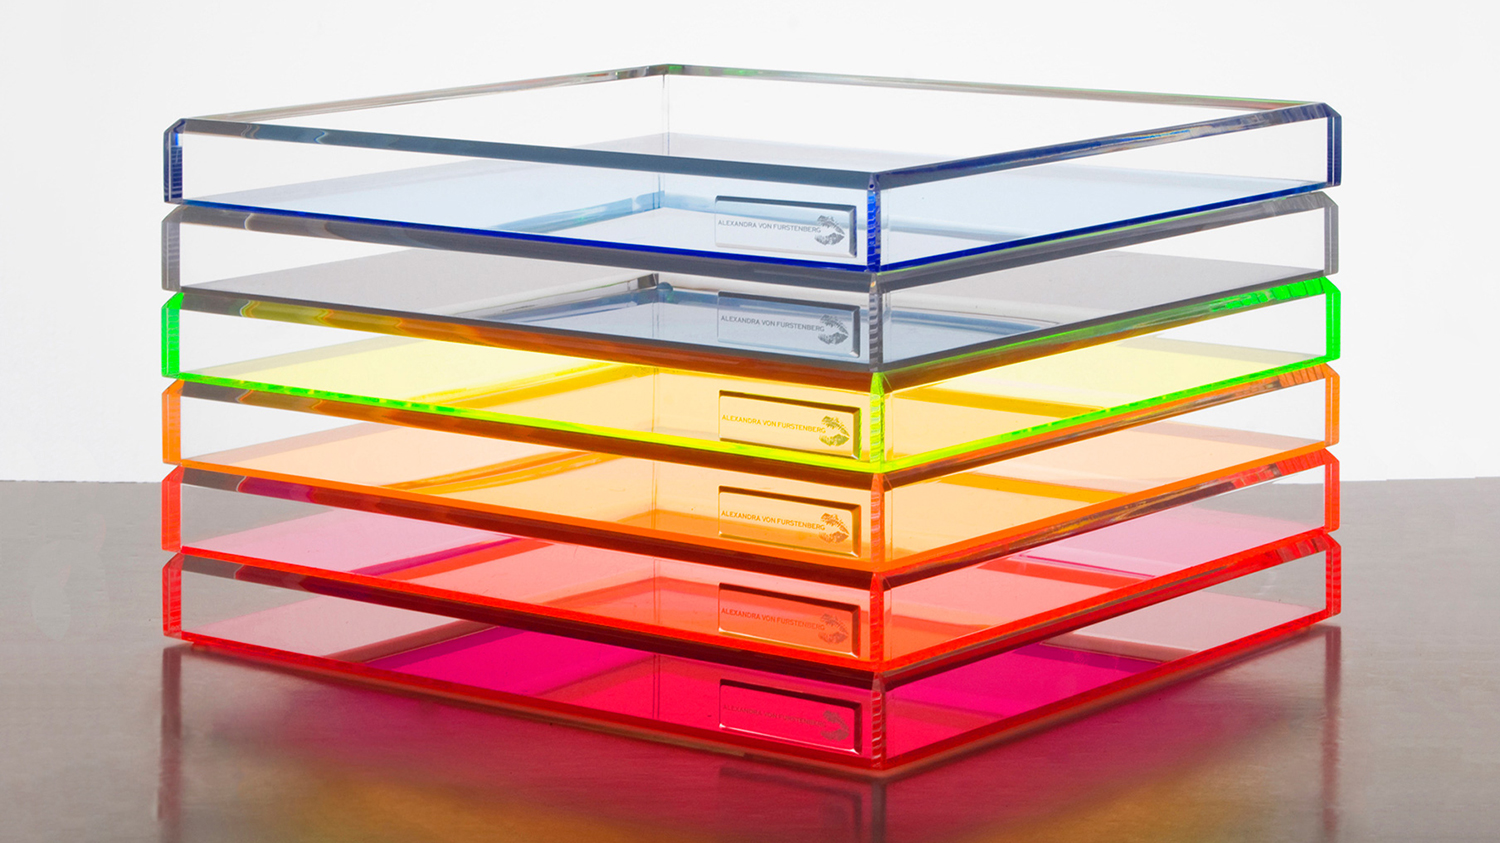 The colorful trays: